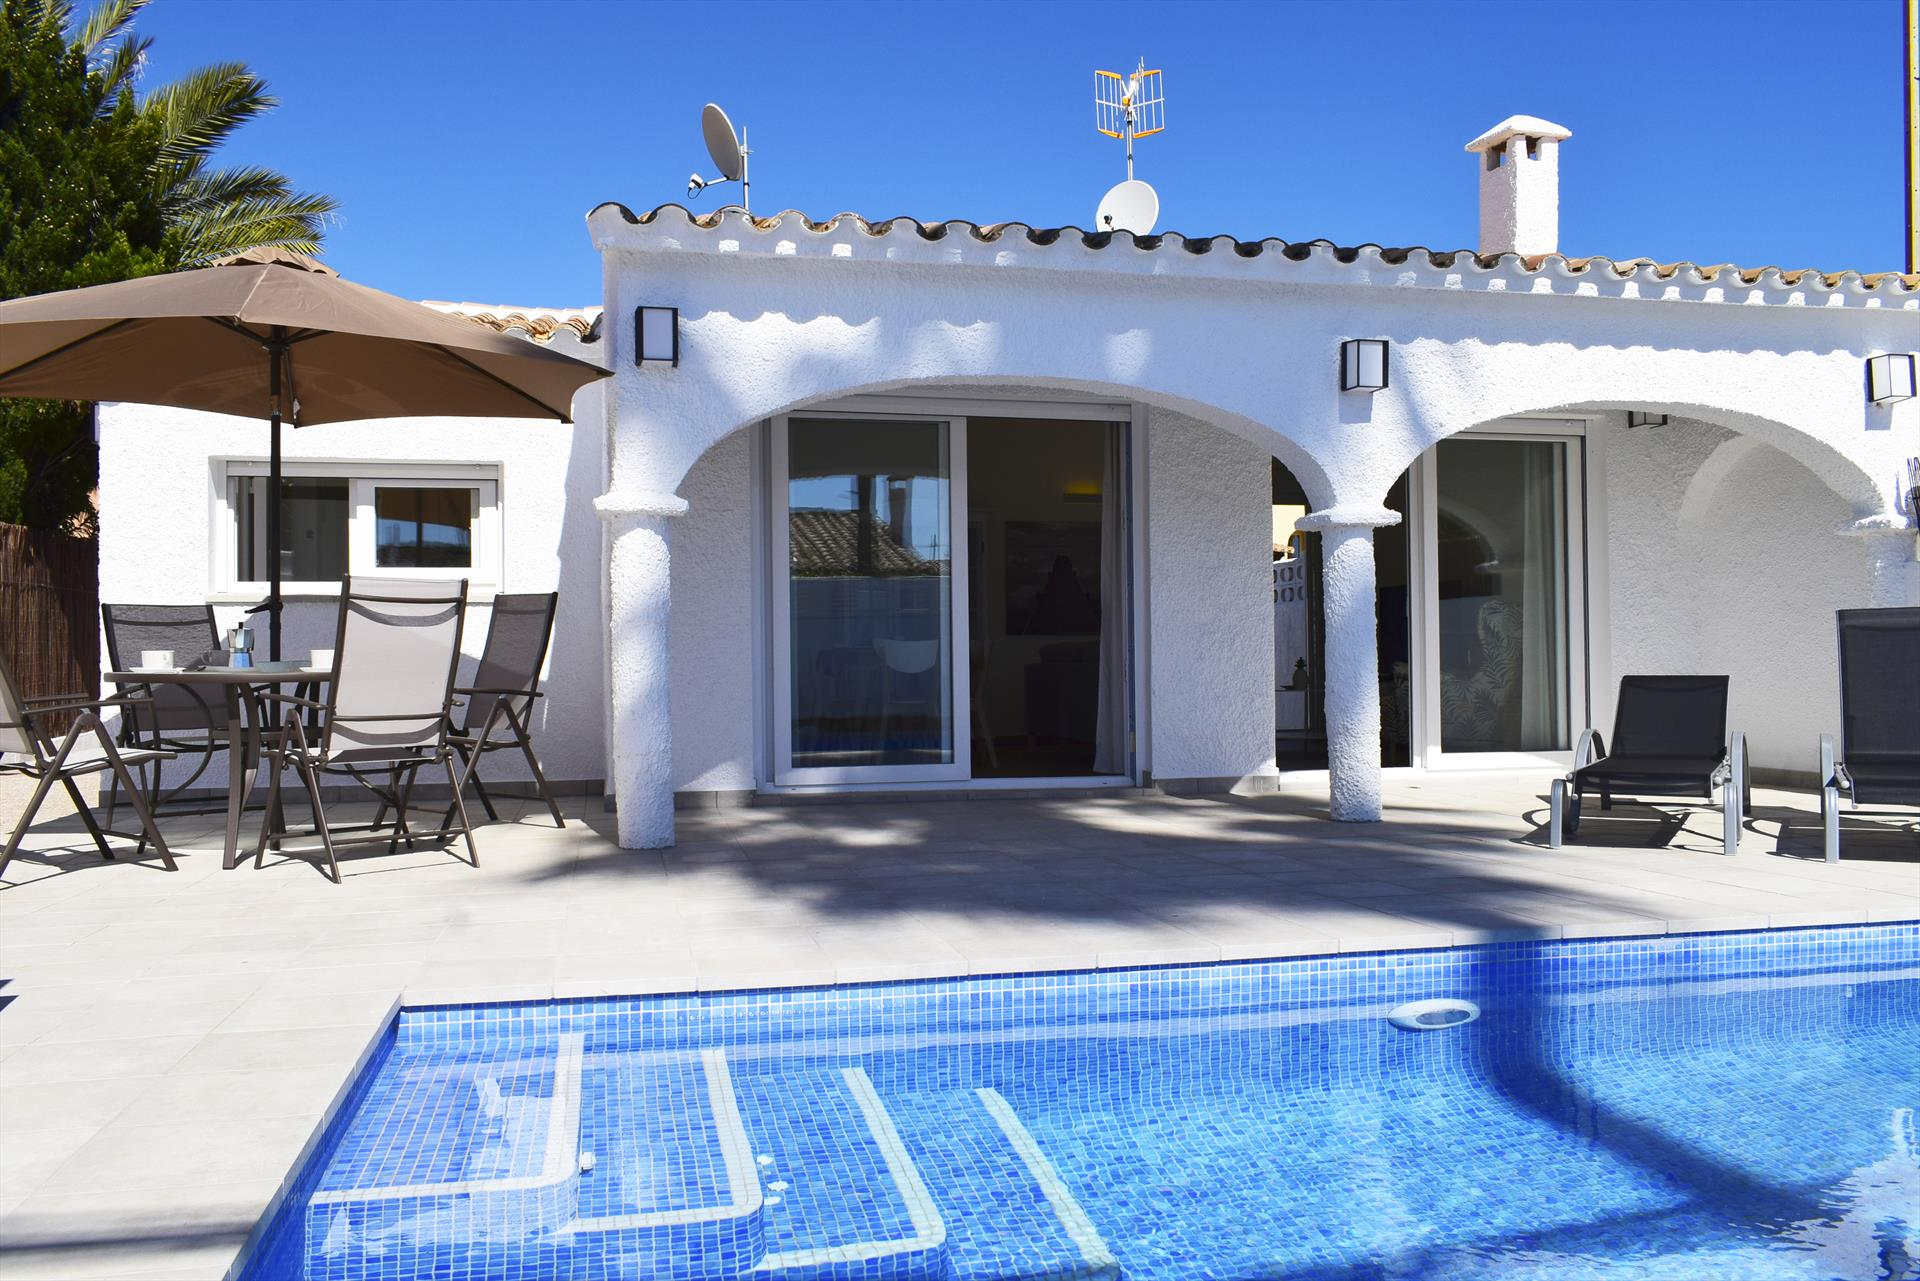 Bacalla Piscina Privada Les Marines CH3200, Wonderful and cheerful holiday house in Denia, on the Costa Blanca, Spain  with private pool for 6 persons.....